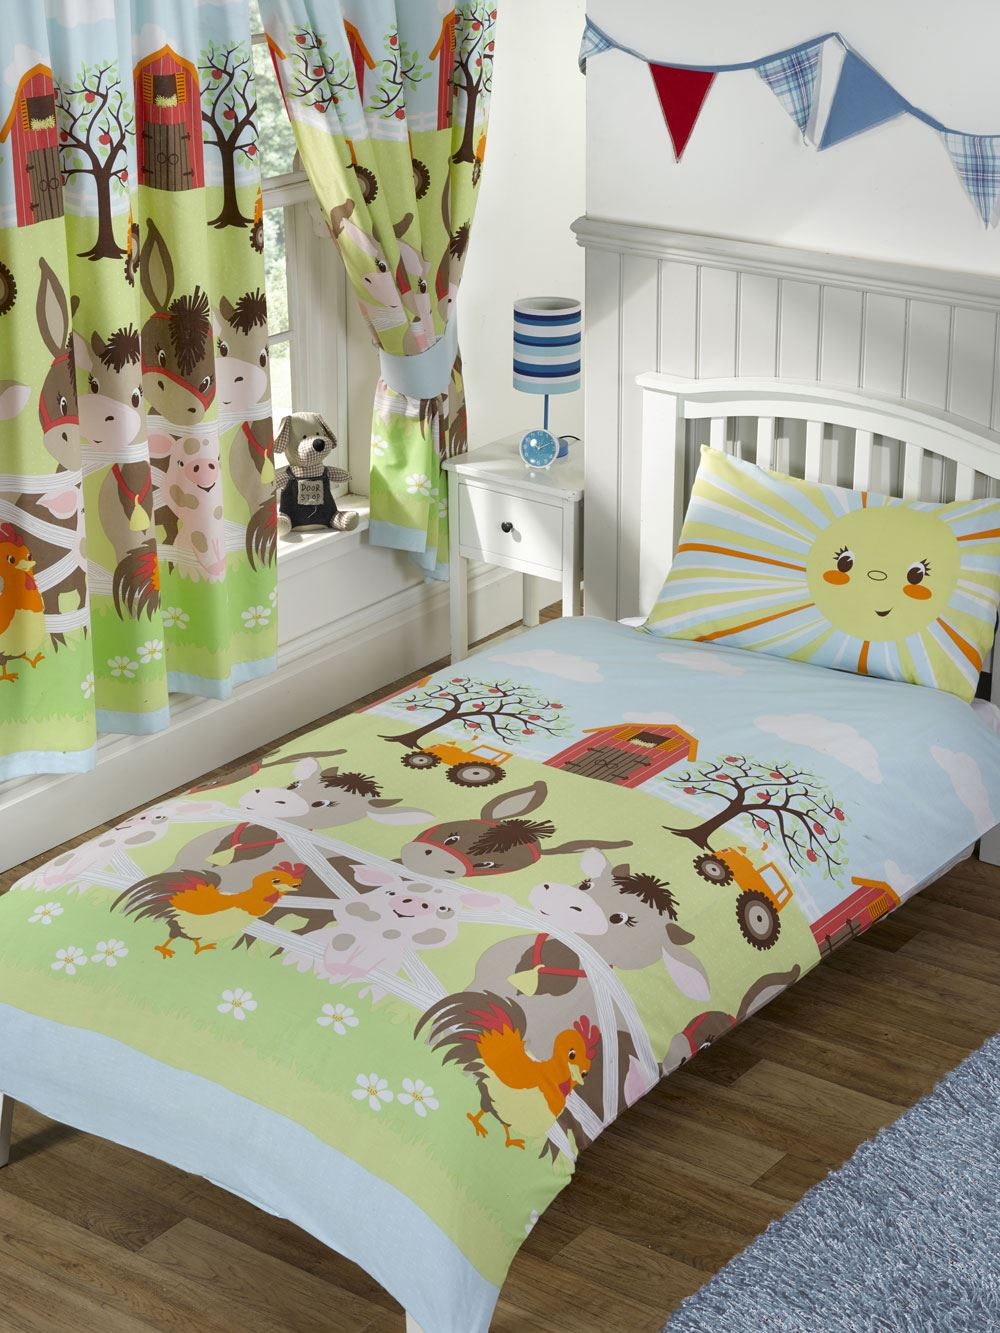 ensemble parure de lit enfant personnage disney housse couette 1 personne ebay. Black Bedroom Furniture Sets. Home Design Ideas